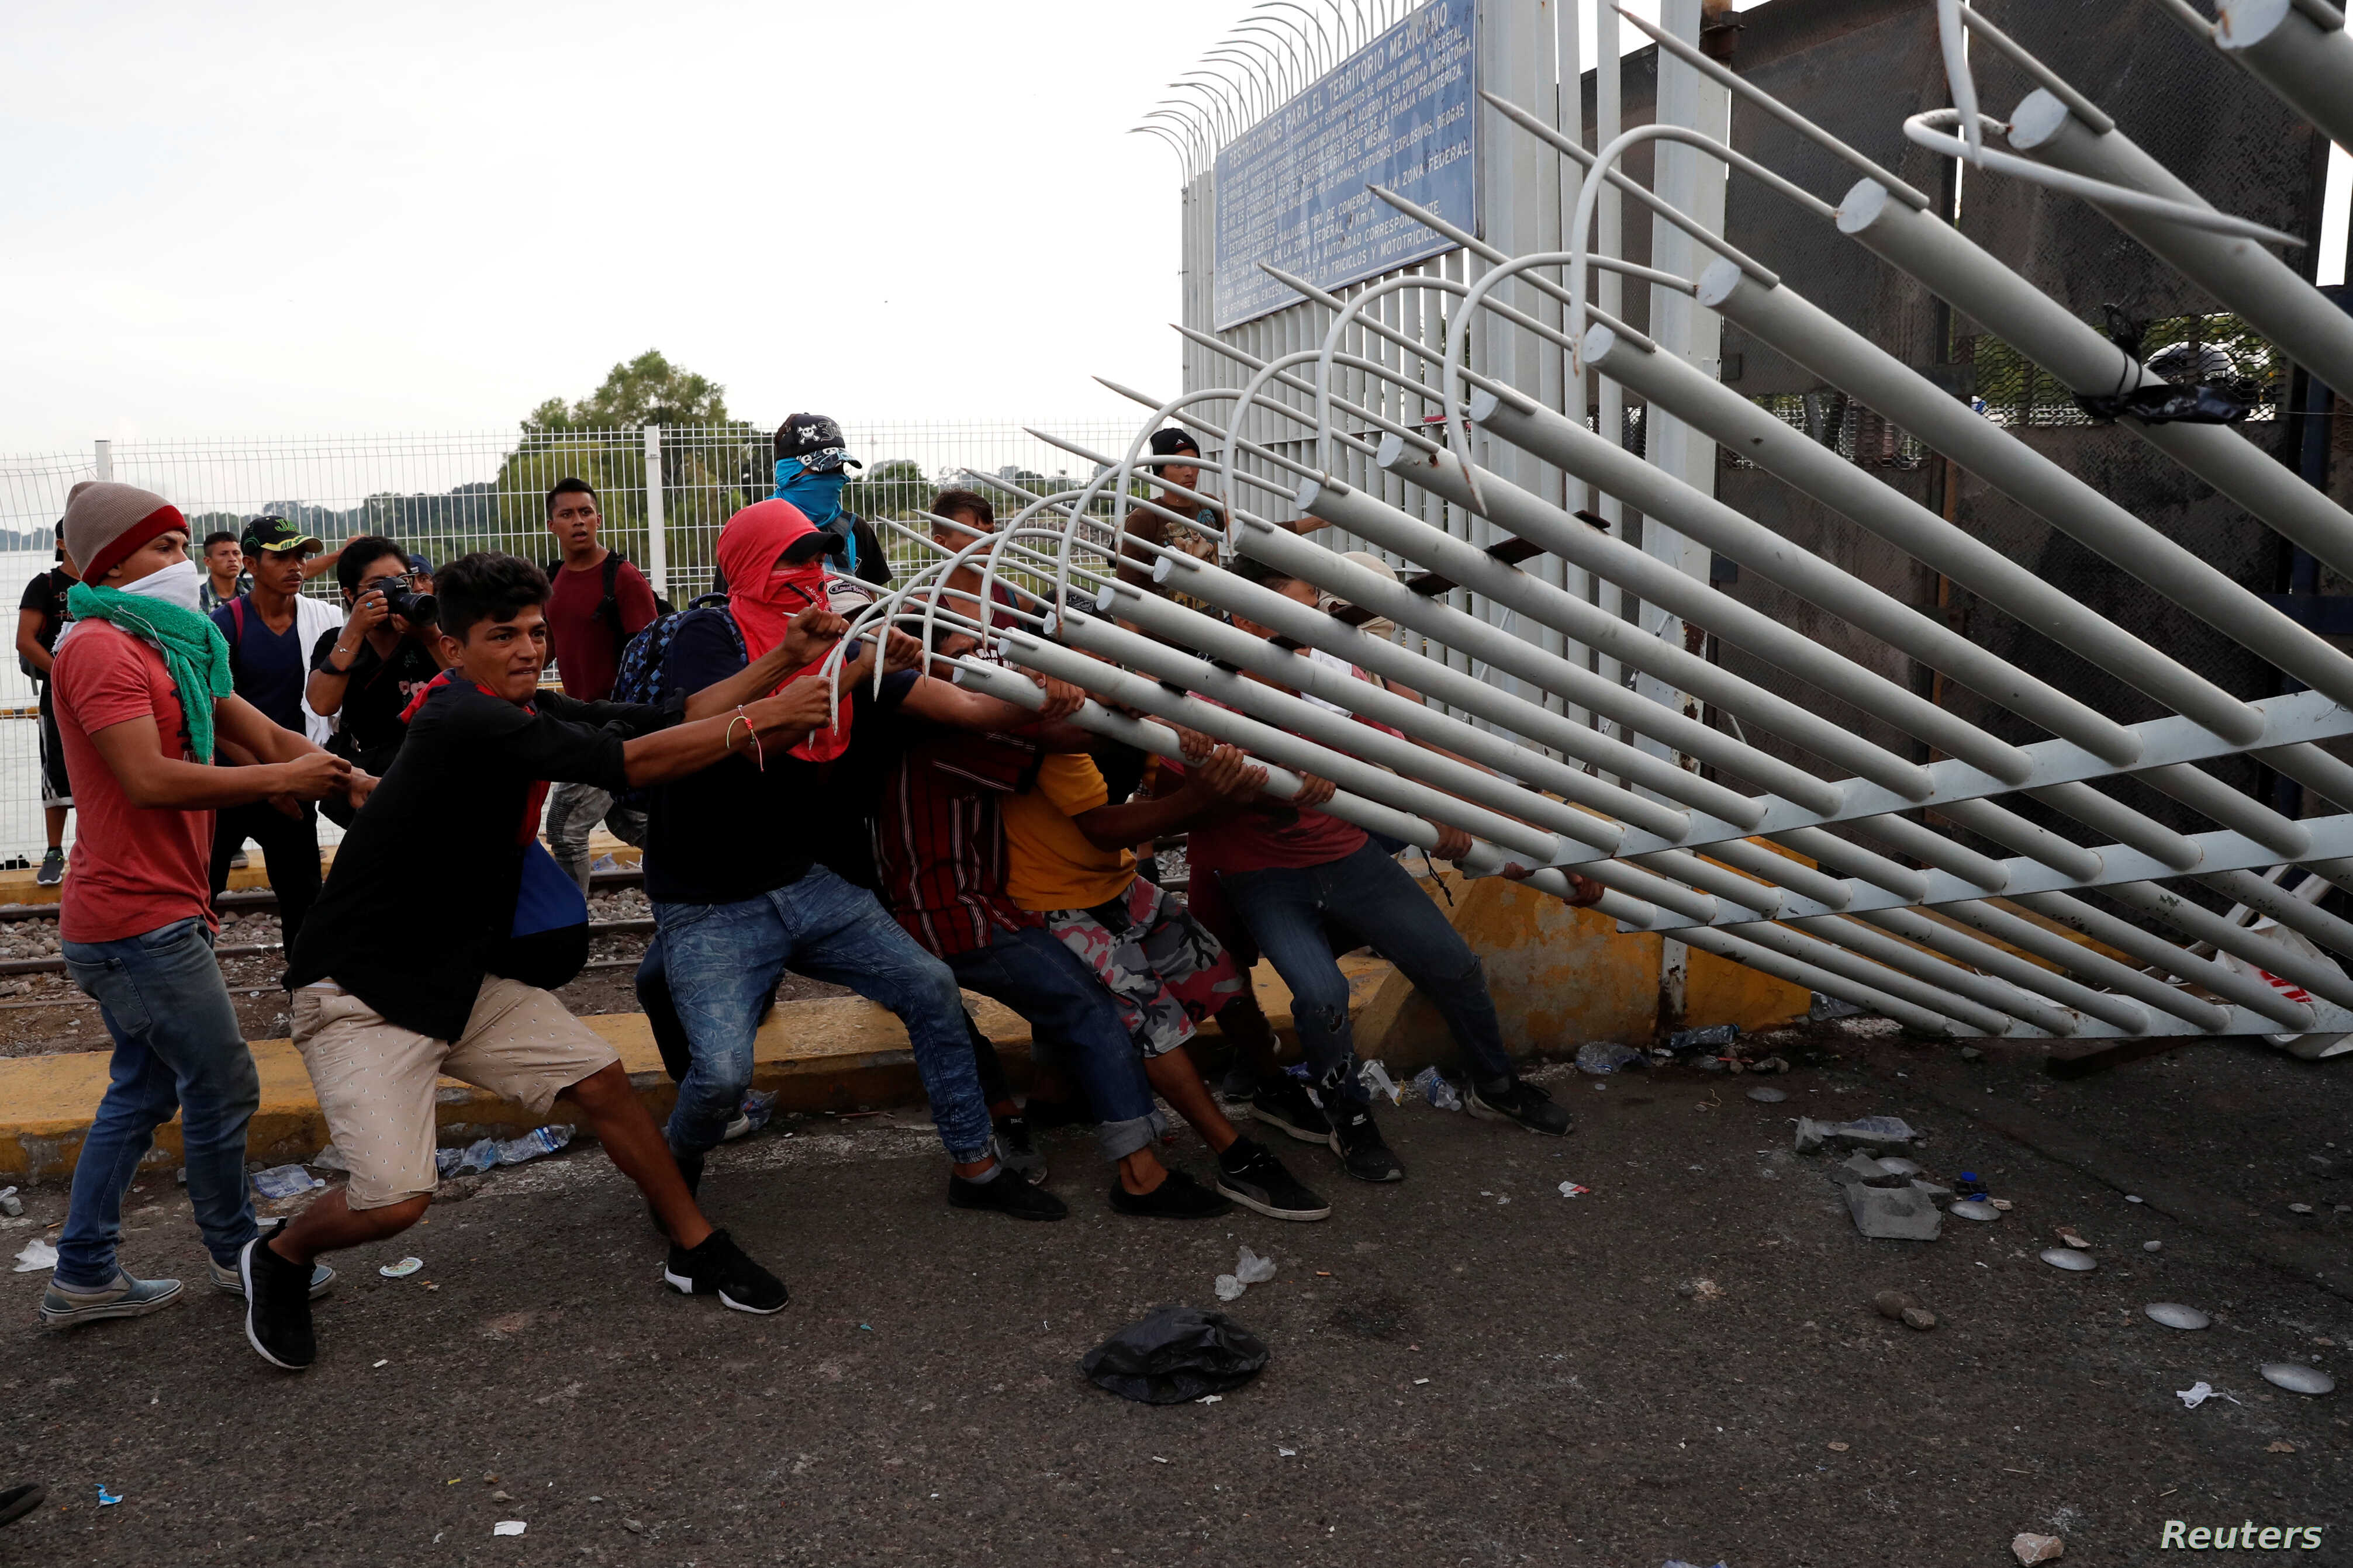 A group of men part of a caravan of thousands of migrants from Central America en route to the U.S, pull down the border gate with the intention to carry on their journey, in Tecun Uman, Guatemala, Oct. 28, 2018.